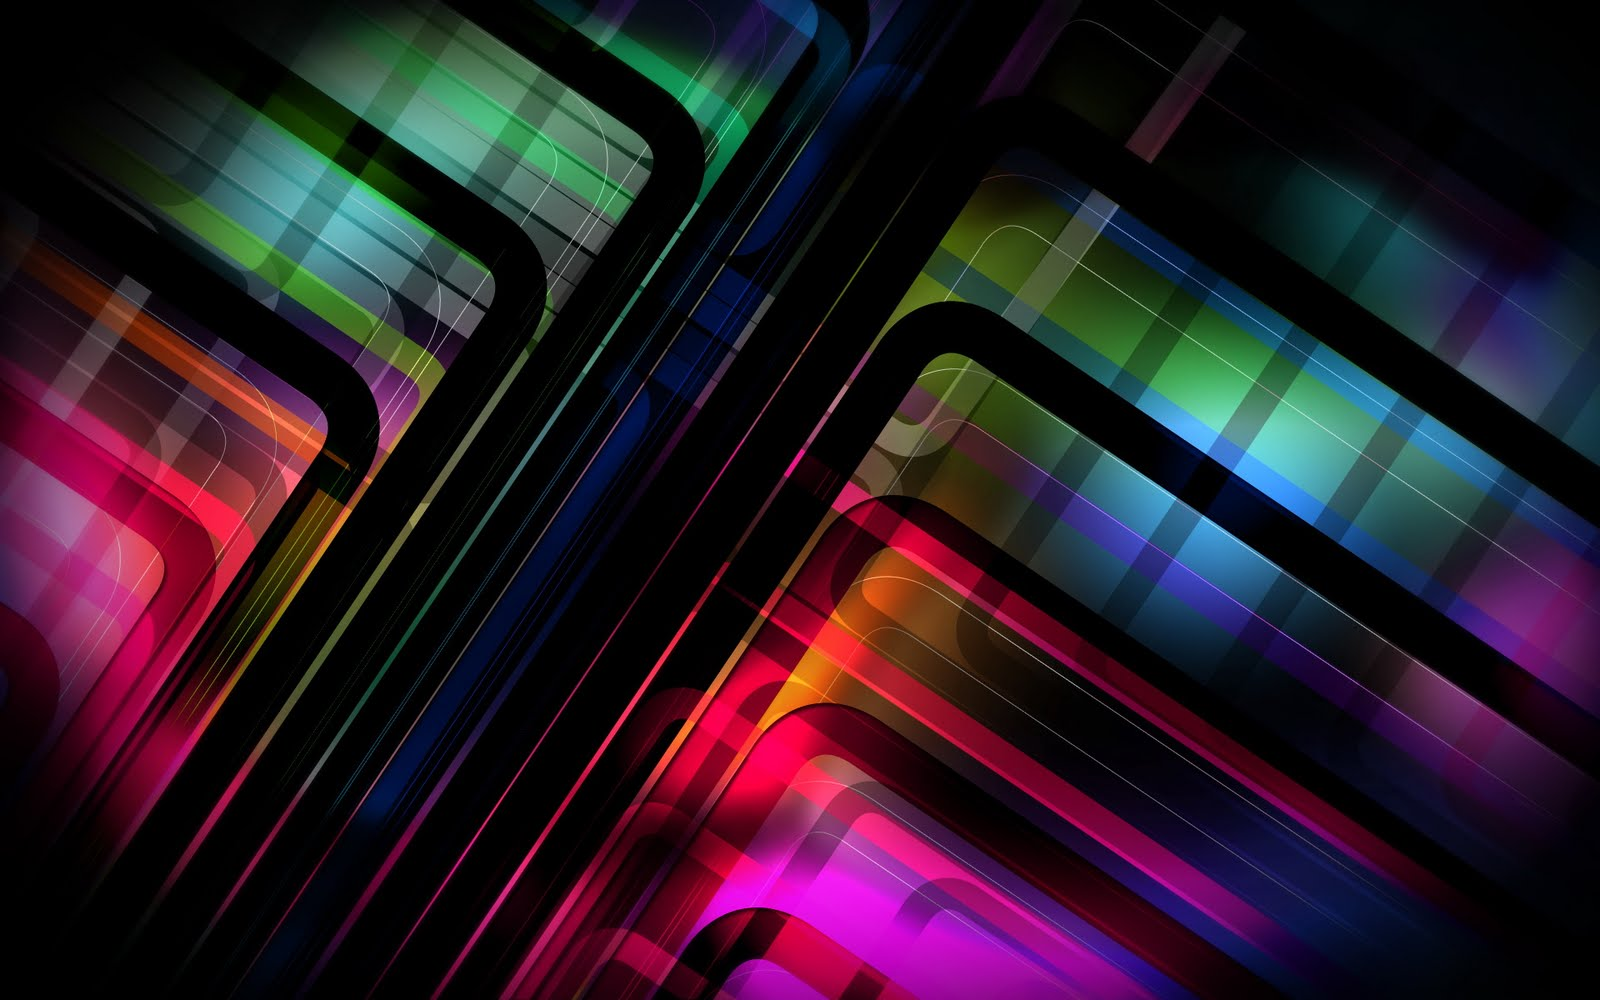 Abstract wallpaper widescreen see to world abstract wallpaper widescreen voltagebd Image collections